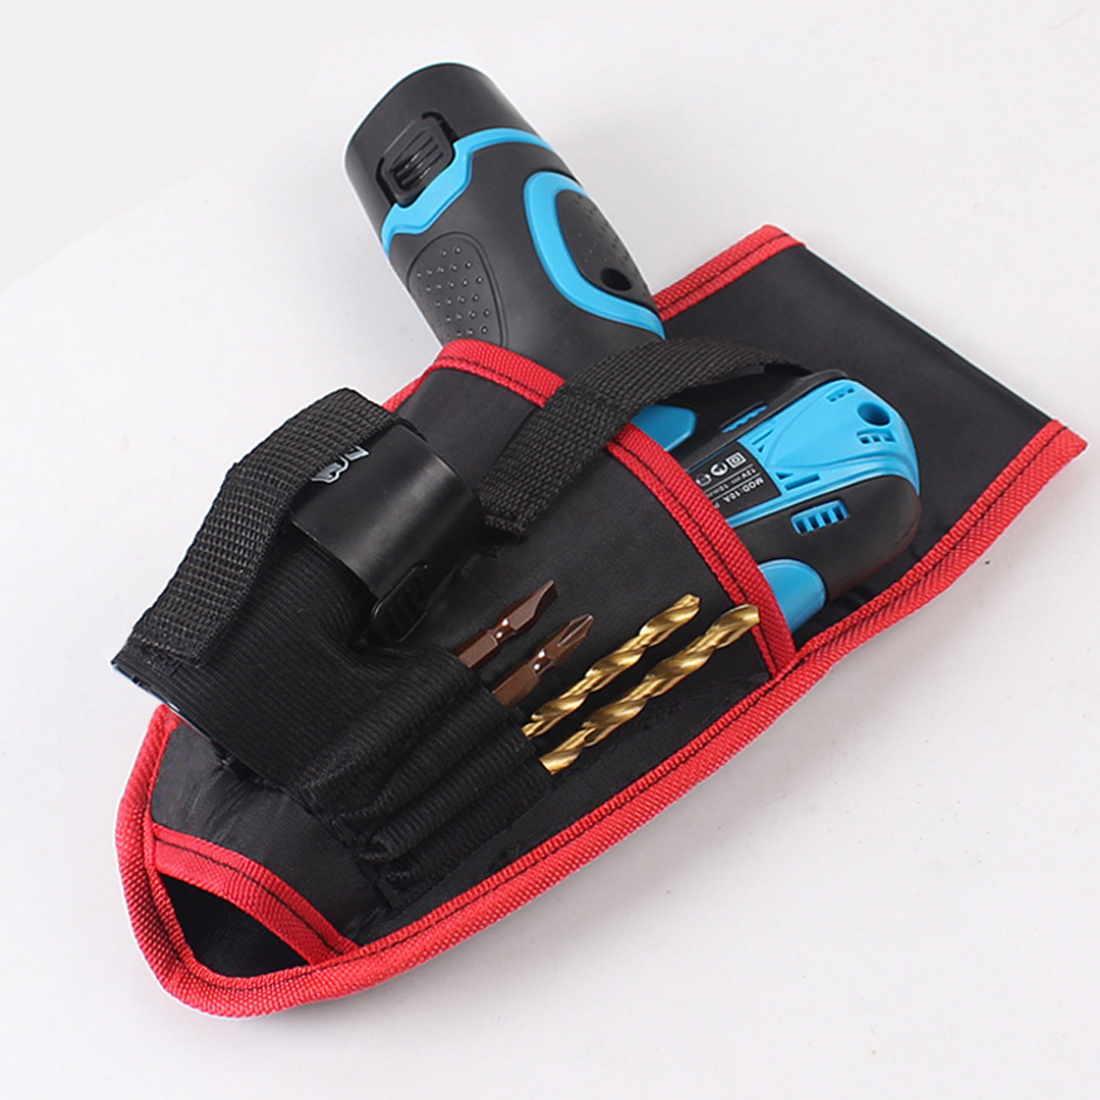 New Brand 1pc Portable Drill Holder Tool Pouch For 12V Drill Screwdriver Waist Tool Belt Bag Cordless Tool Oxford